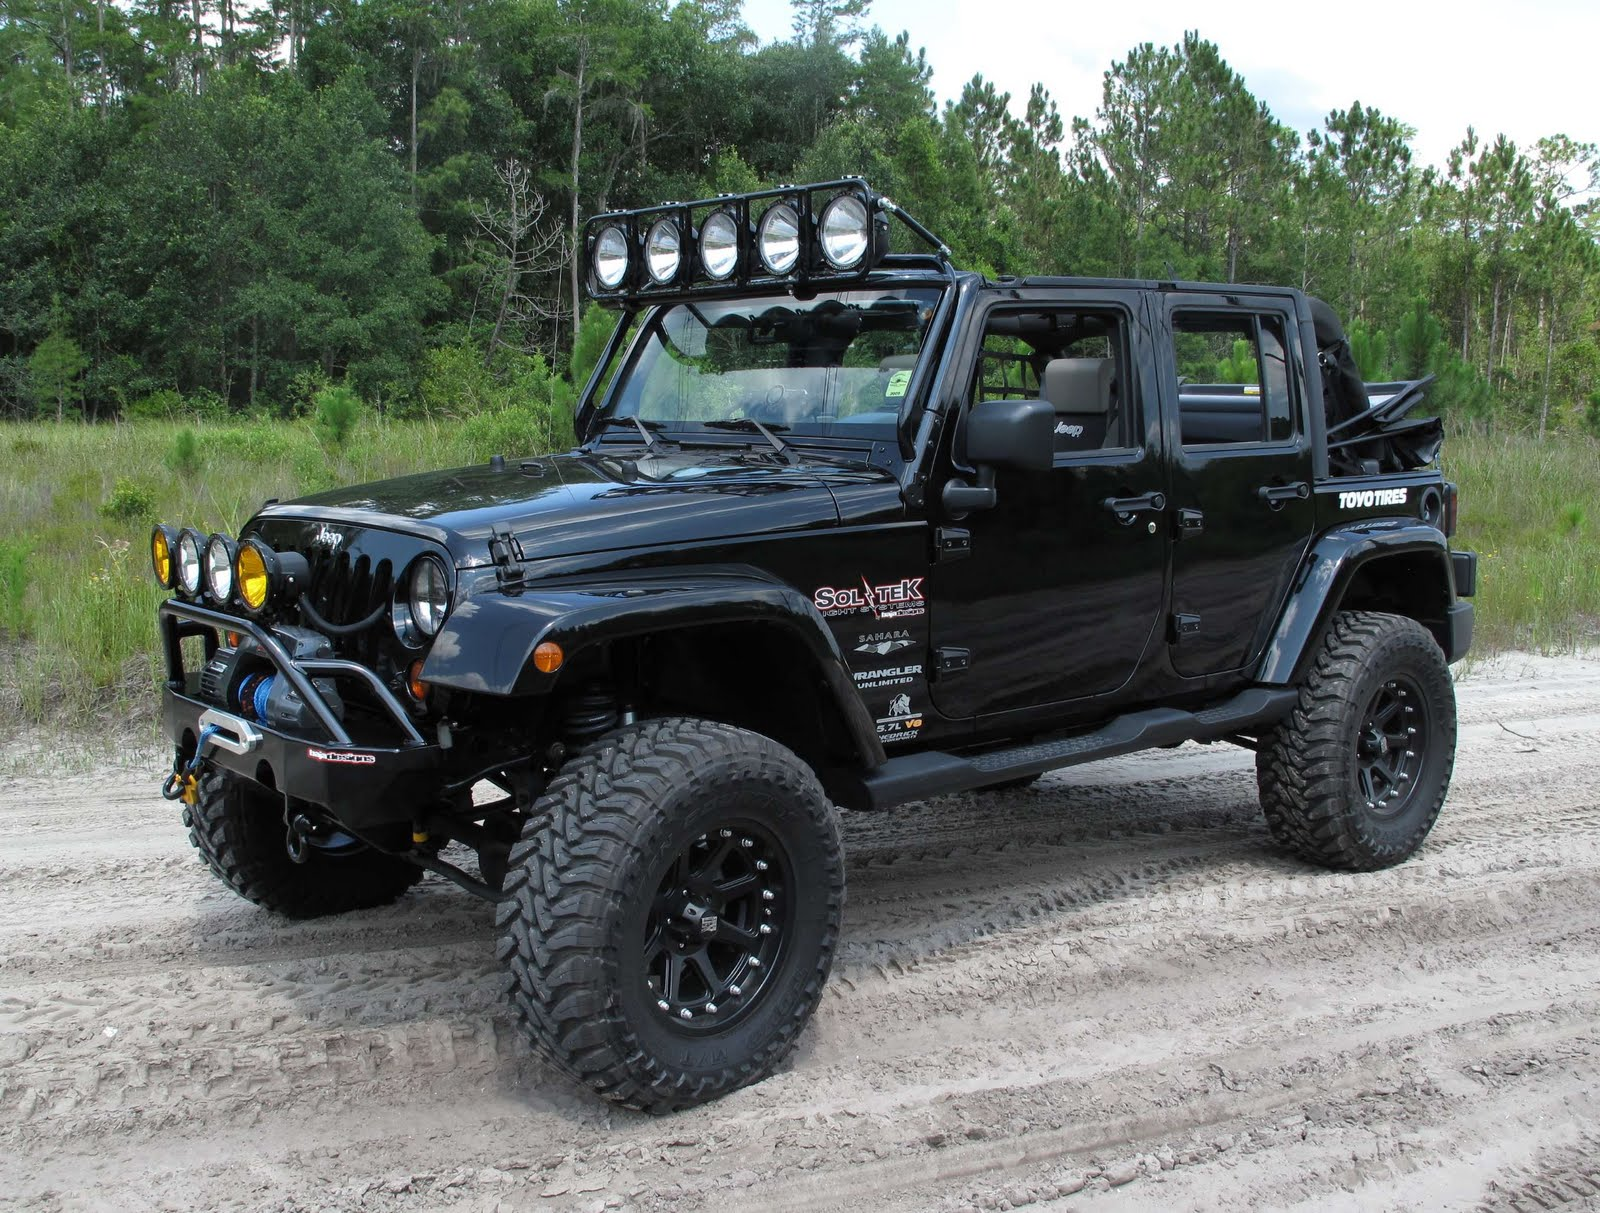 Custom Jeep Wrangler Jk Unlimited Black